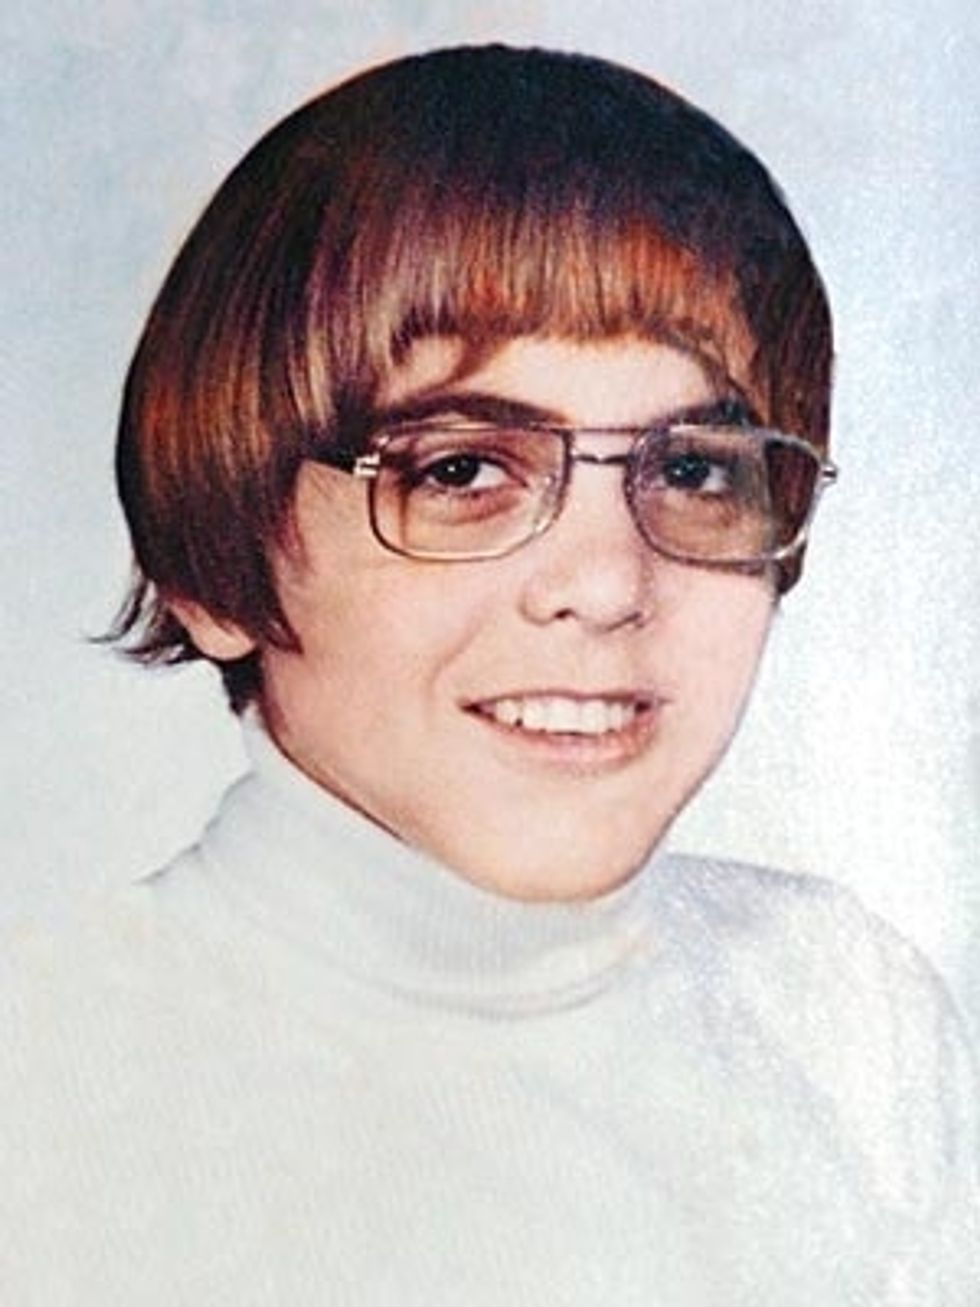 The Morning Funnies: George Clooney's Awkward Yearbook Photo + Pugs Dressed as Yoda